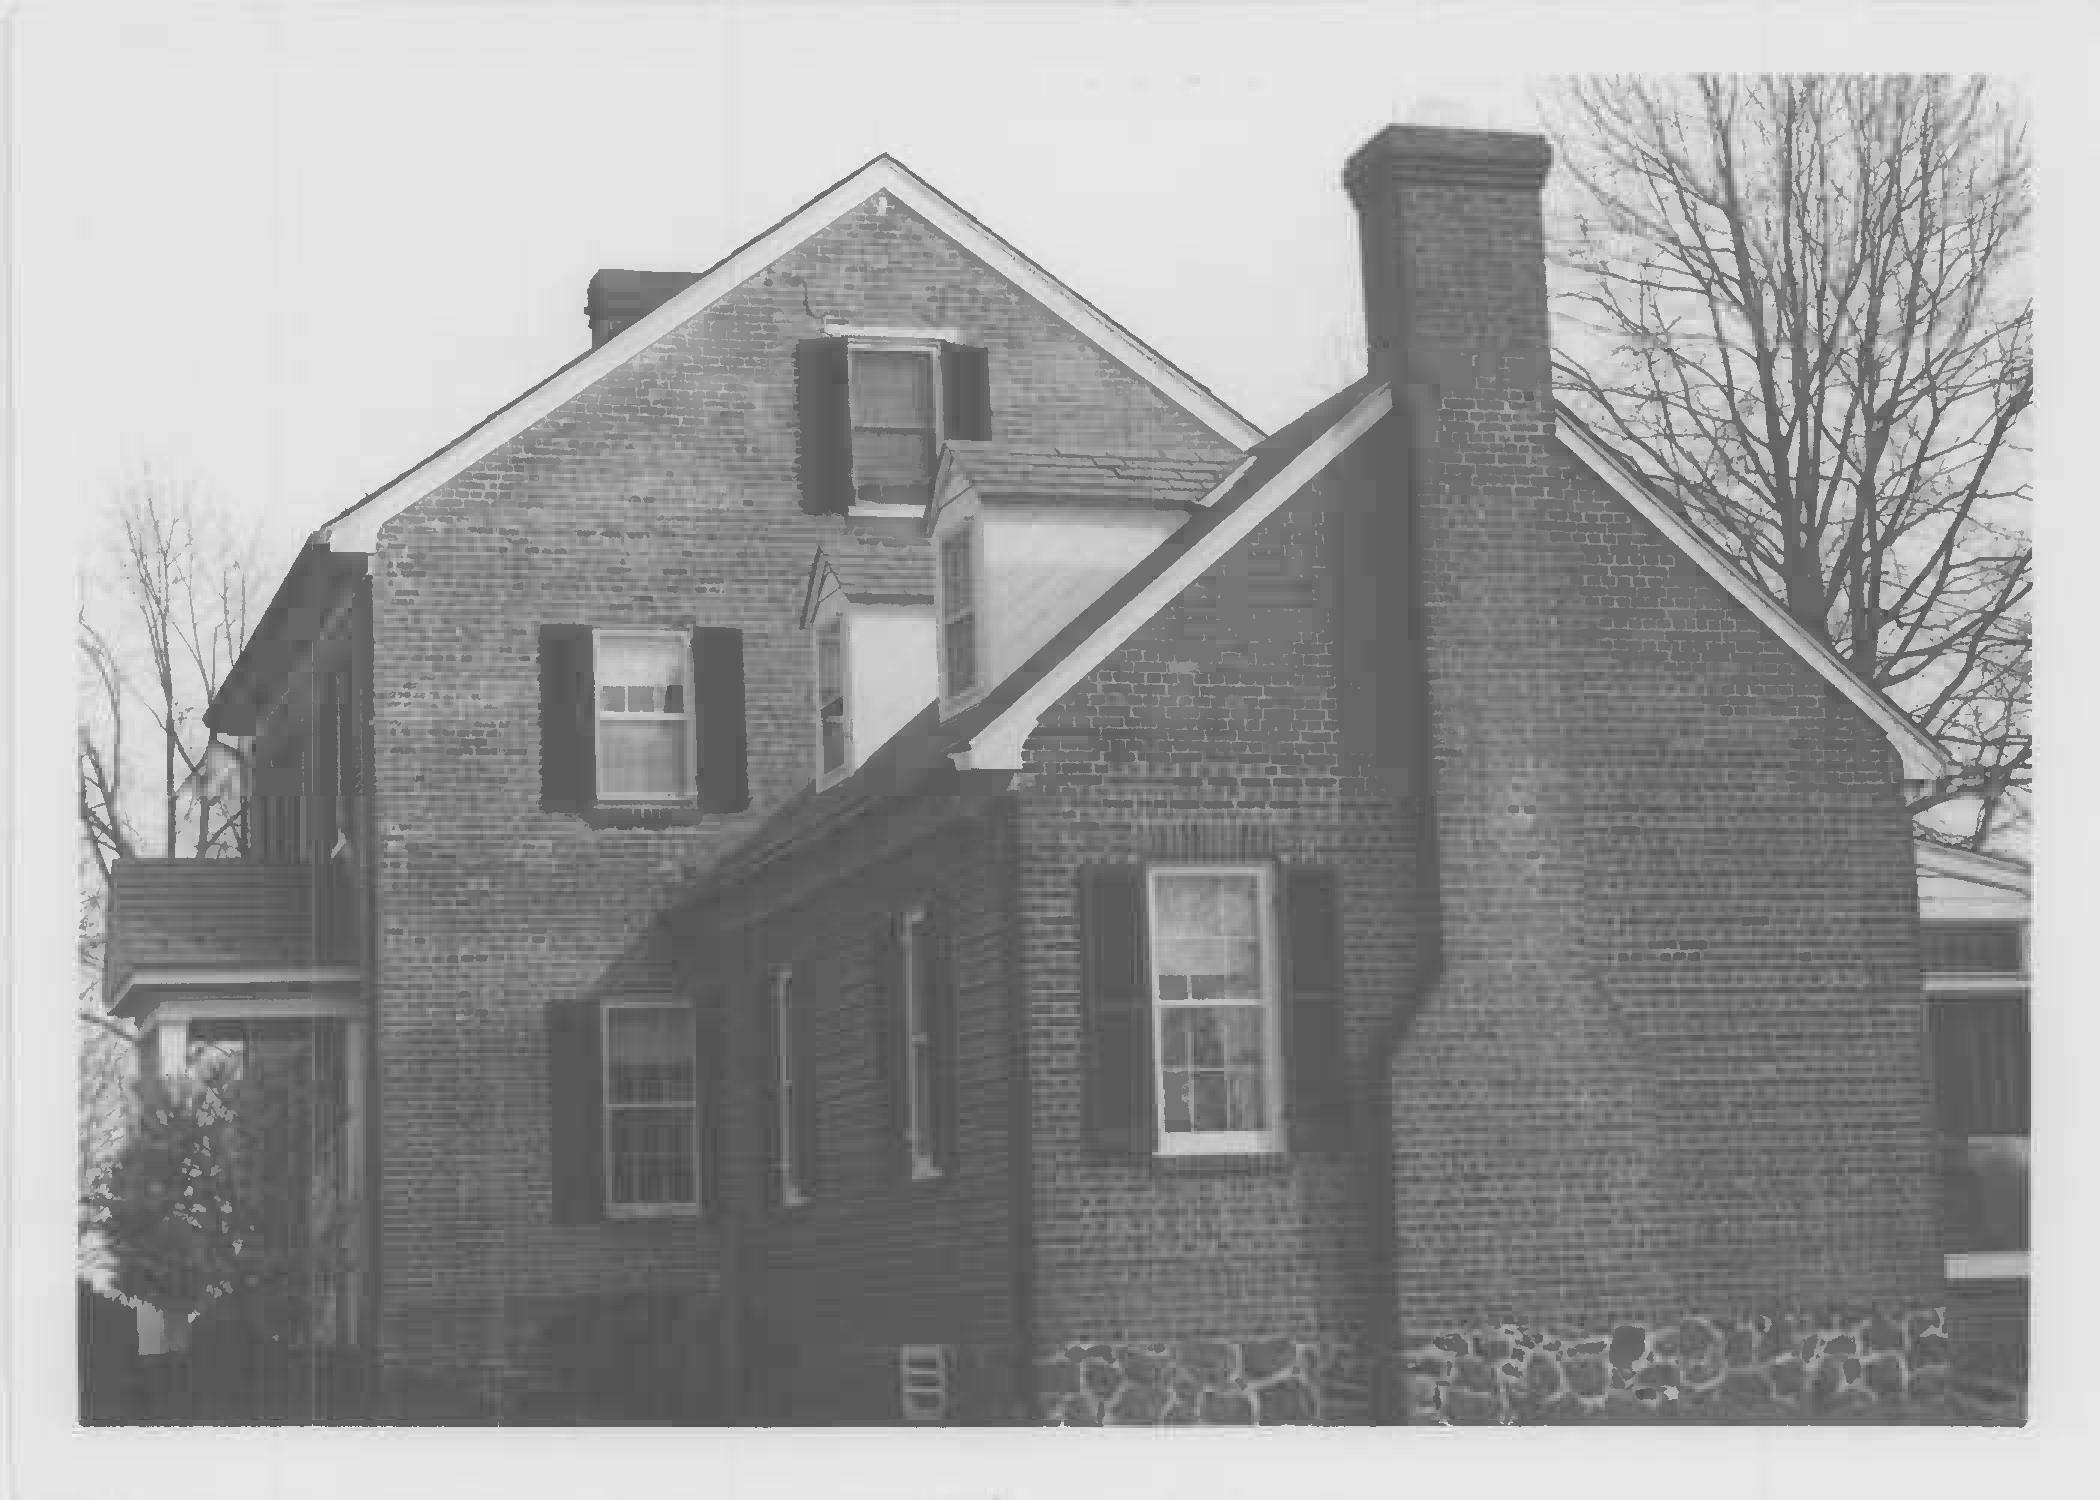 West gable end, Whites Hall in Maryland